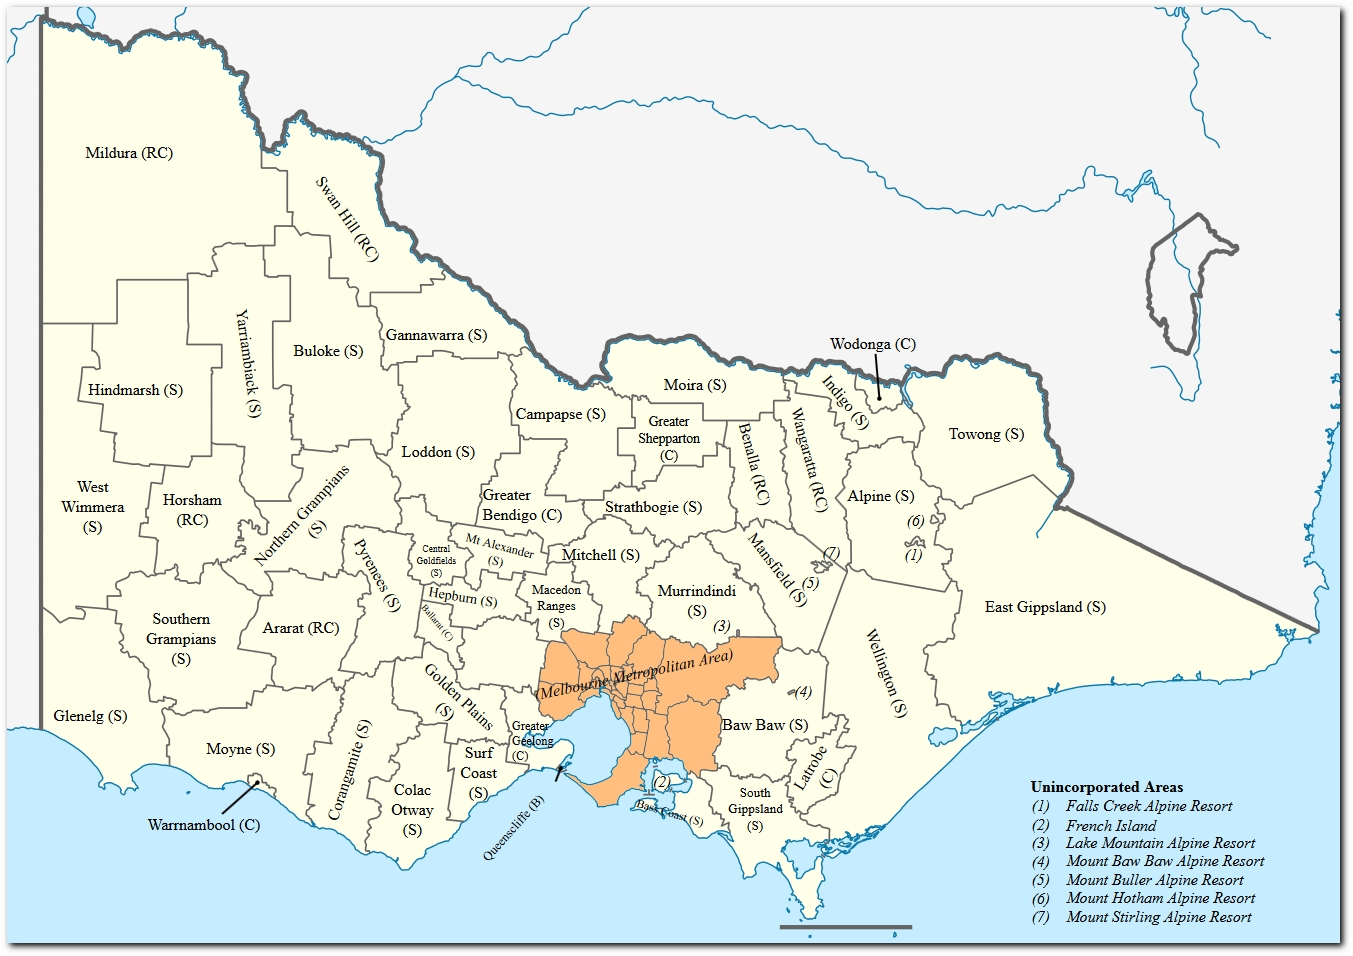 Metropolitan Melbourne – Propertydata with regard to Melbourne Metropolitan Area Map 2018